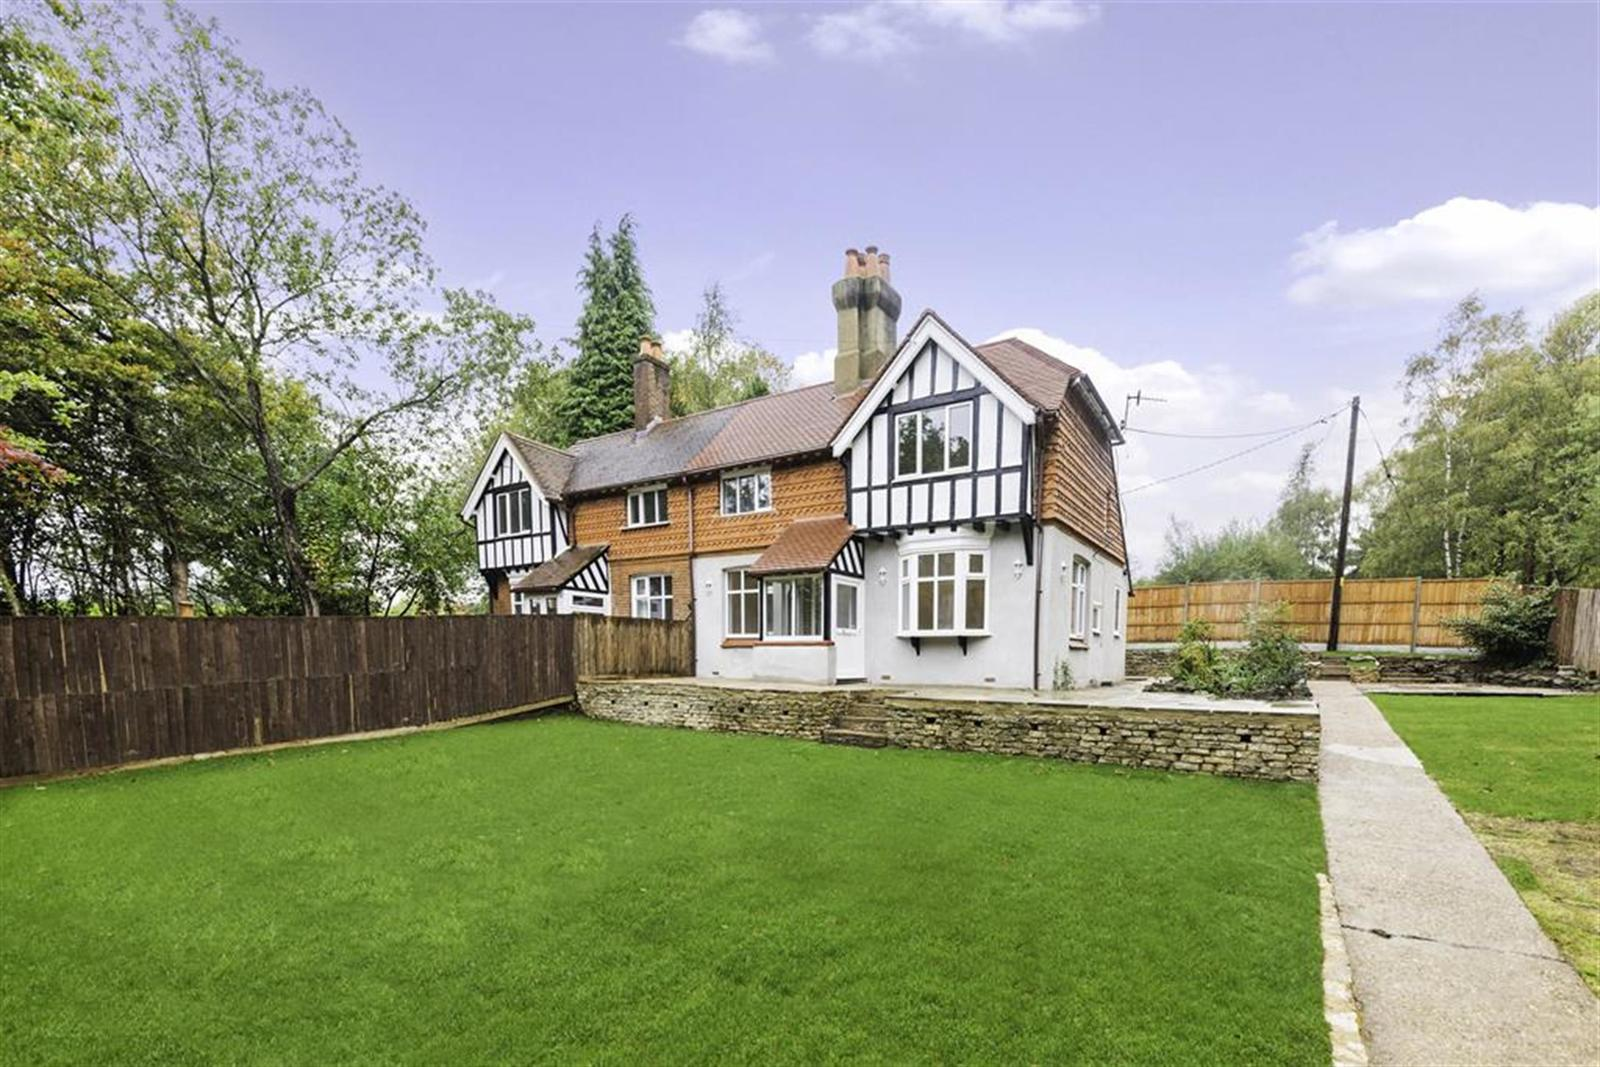 Coombe Cottages, Deans Lane, Nutfield, RH1 4HR Image 1